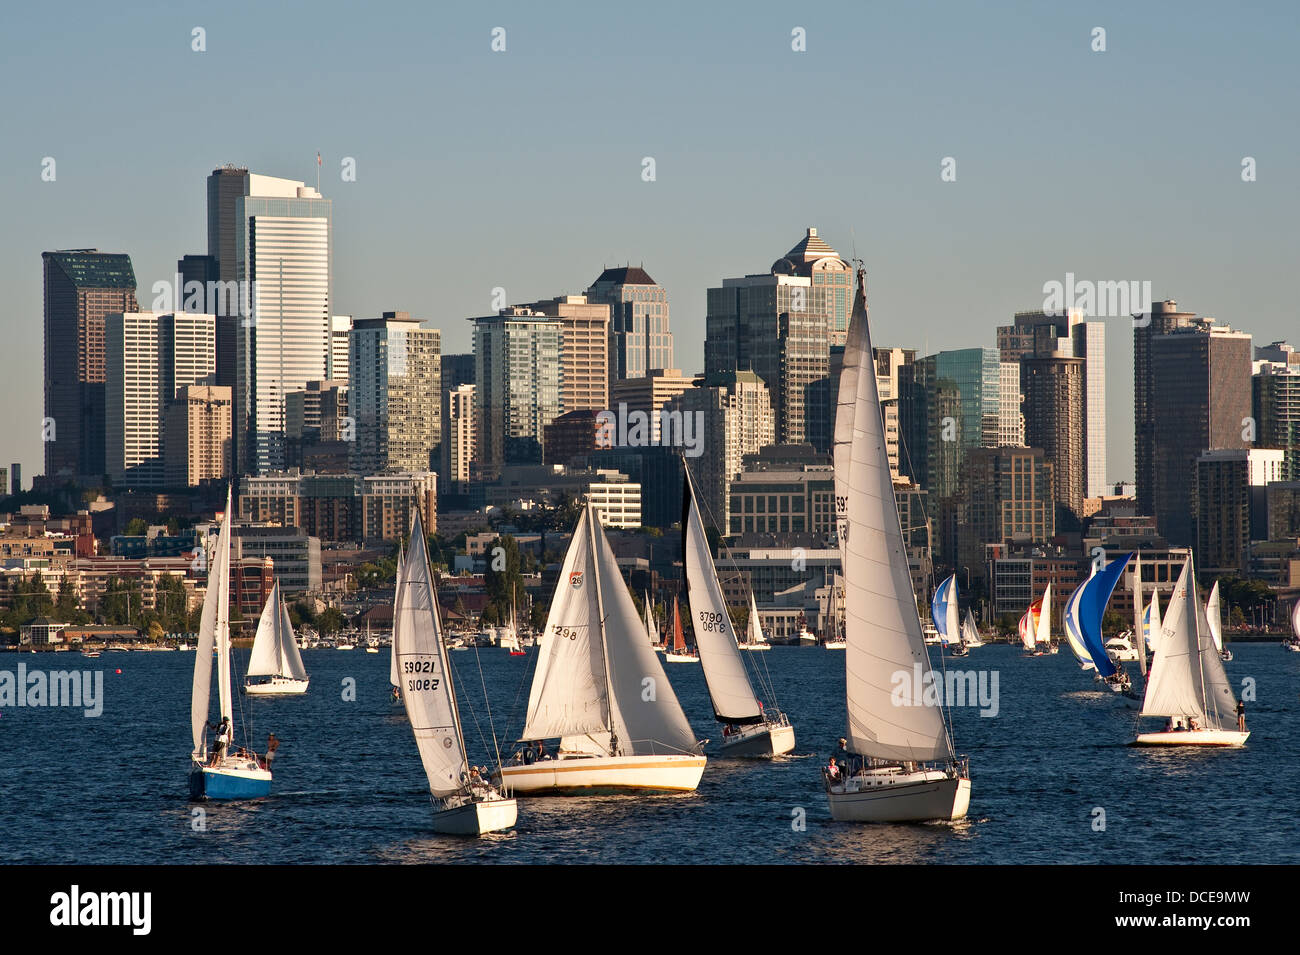 Seattle skyline with sailboats racing on Lake Union - Stock Image